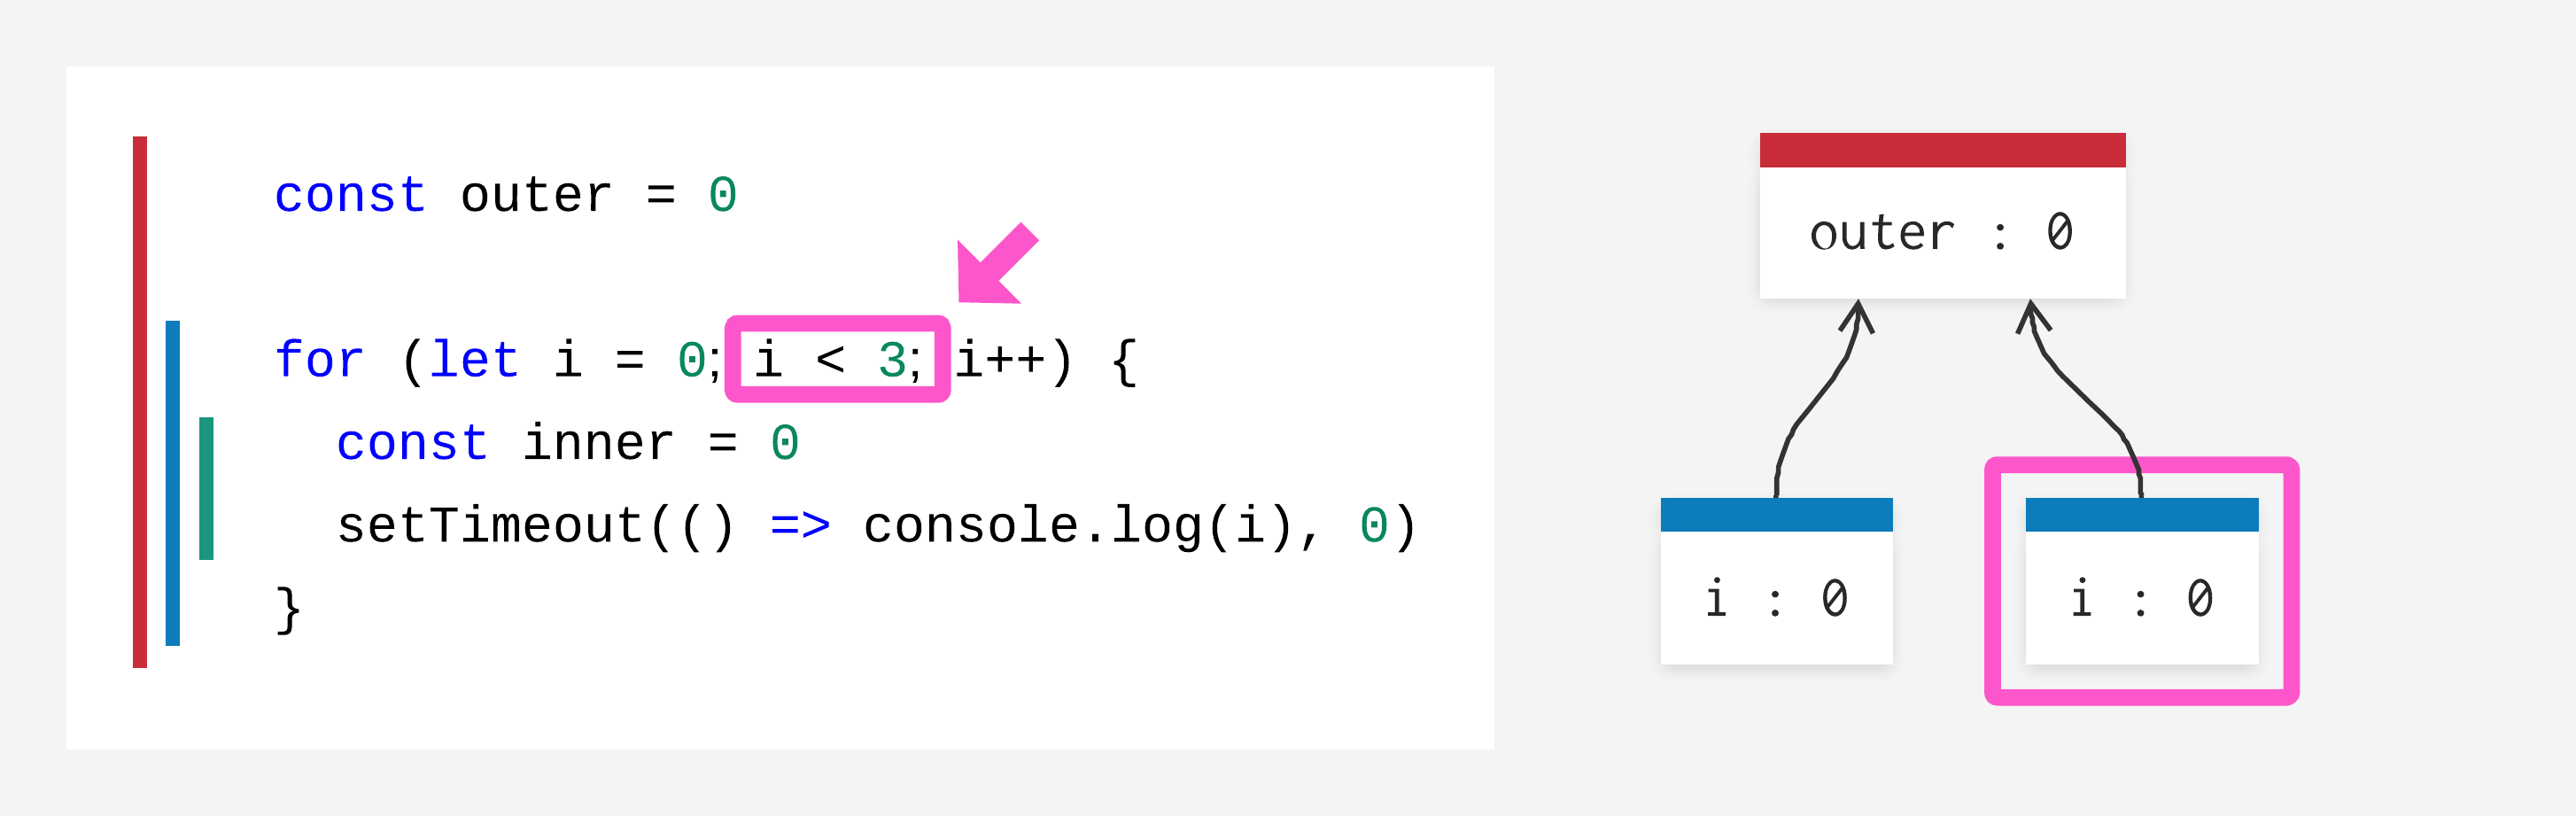 for-loop test